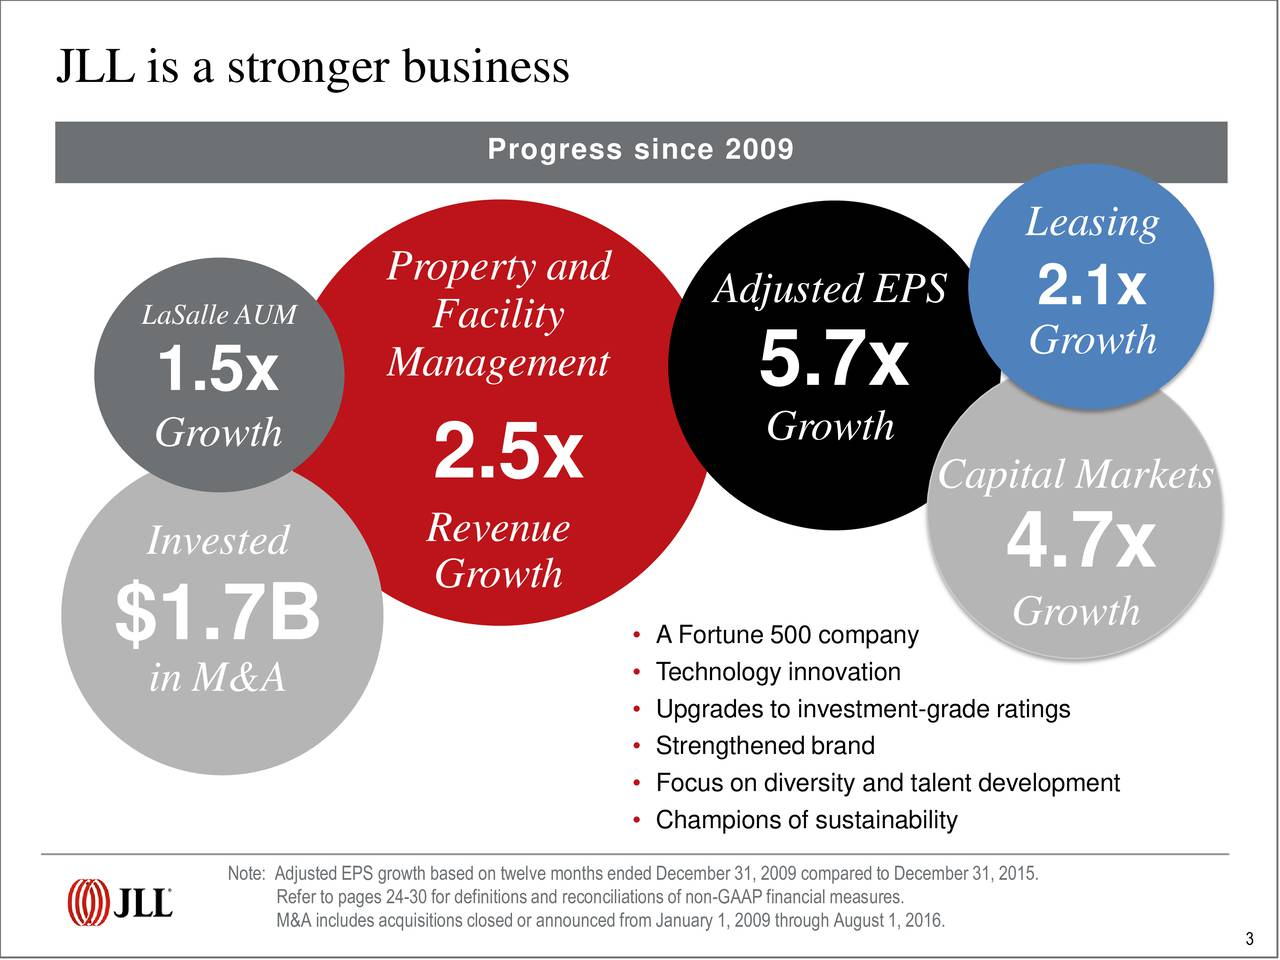 Progress since 2009 Leasing Property and Adjusted EPS 2.1x LaSalle AUM Facility Growth 1.5x Management 5.7x Growth 2.5x Growth Capital Markets Invested Revenue Growth 4.7x $1.7B  A Fortune 500 companywth Technology innovation in M&A  Upgrades to investment-grade ratings Strengthened brand Focus on diversity and talent development Champions of sustainability Note: AdjustedEPS growth based on twelve monthsended December 31, 2009 comparedto December 31, 2015. M&A includesacquisitionsclosedor announcedfrom January 1, 2009 through August 1, 2016.